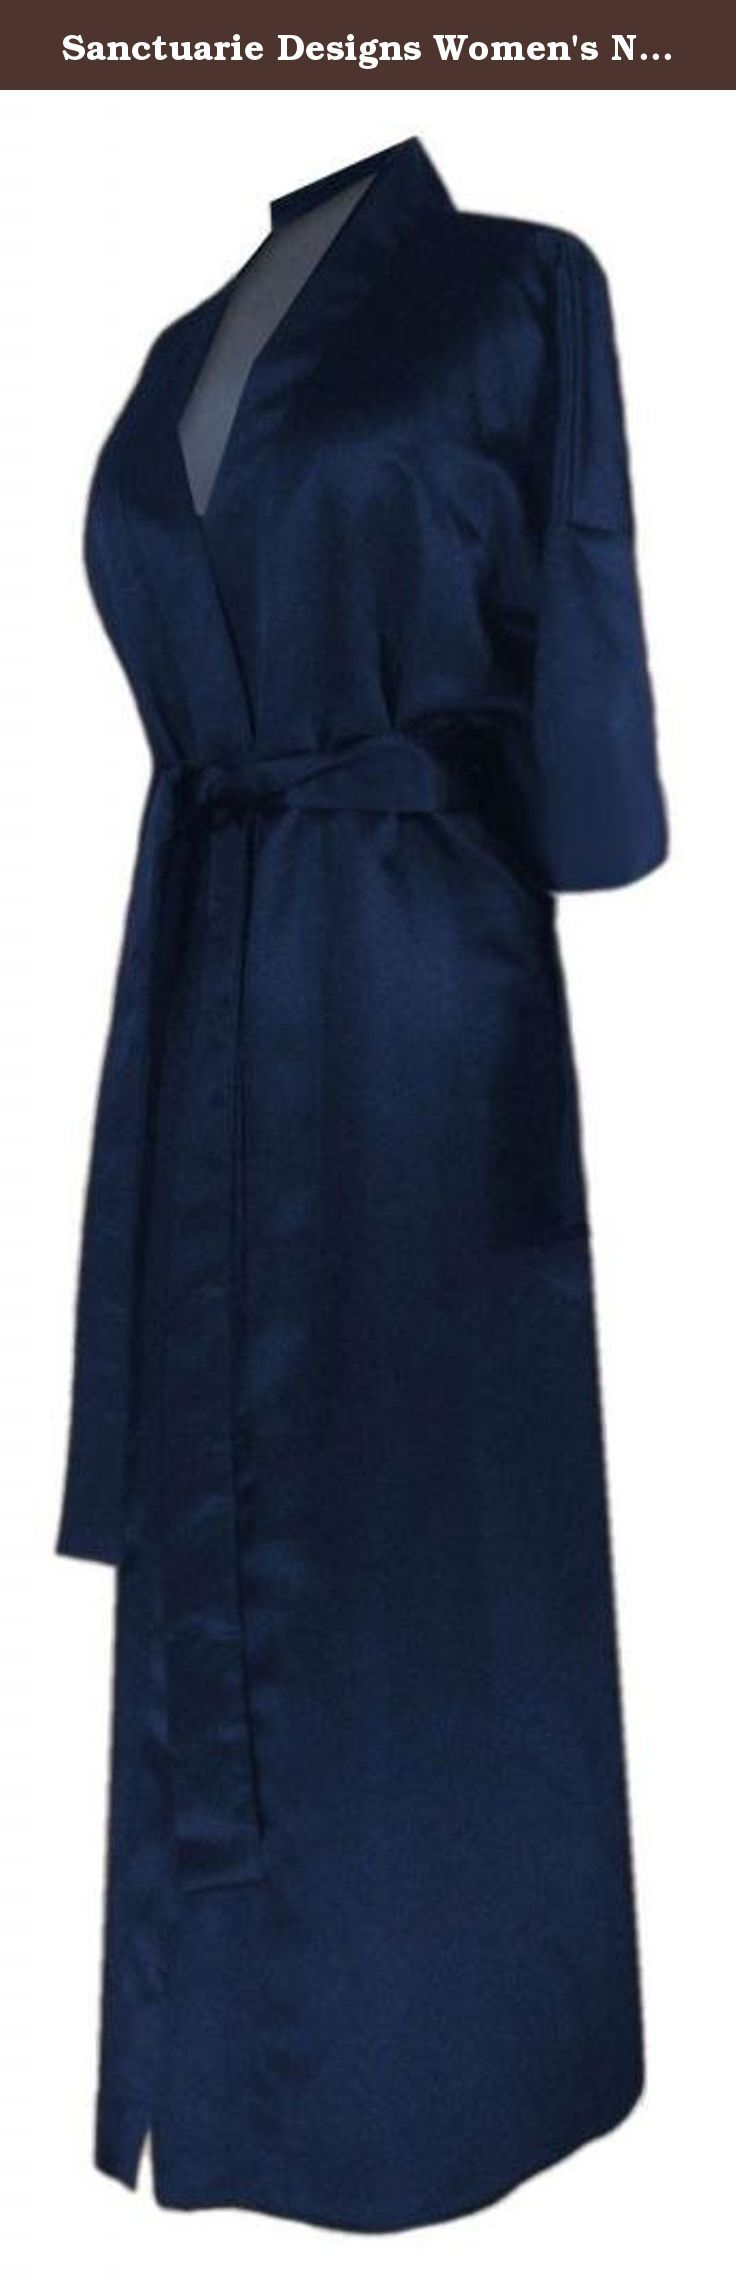 Sanctuarie Designs Women's Navy Satin Plus Size Supersize Robe/3x4x/Navy/. Women's Plus Size & Supersize Satin Sleepwear Robe. Our sizes differ from most stores. Please look at our size chart in the product description for the following: Bust(Chest), Hips and Length measurements. Available in plus & supersizes from 0x to 9x! This style is very flattering! It is machine washable, and travels great! Very comfy and glamorous robe, perfect for a gift to give or keep for yourself.